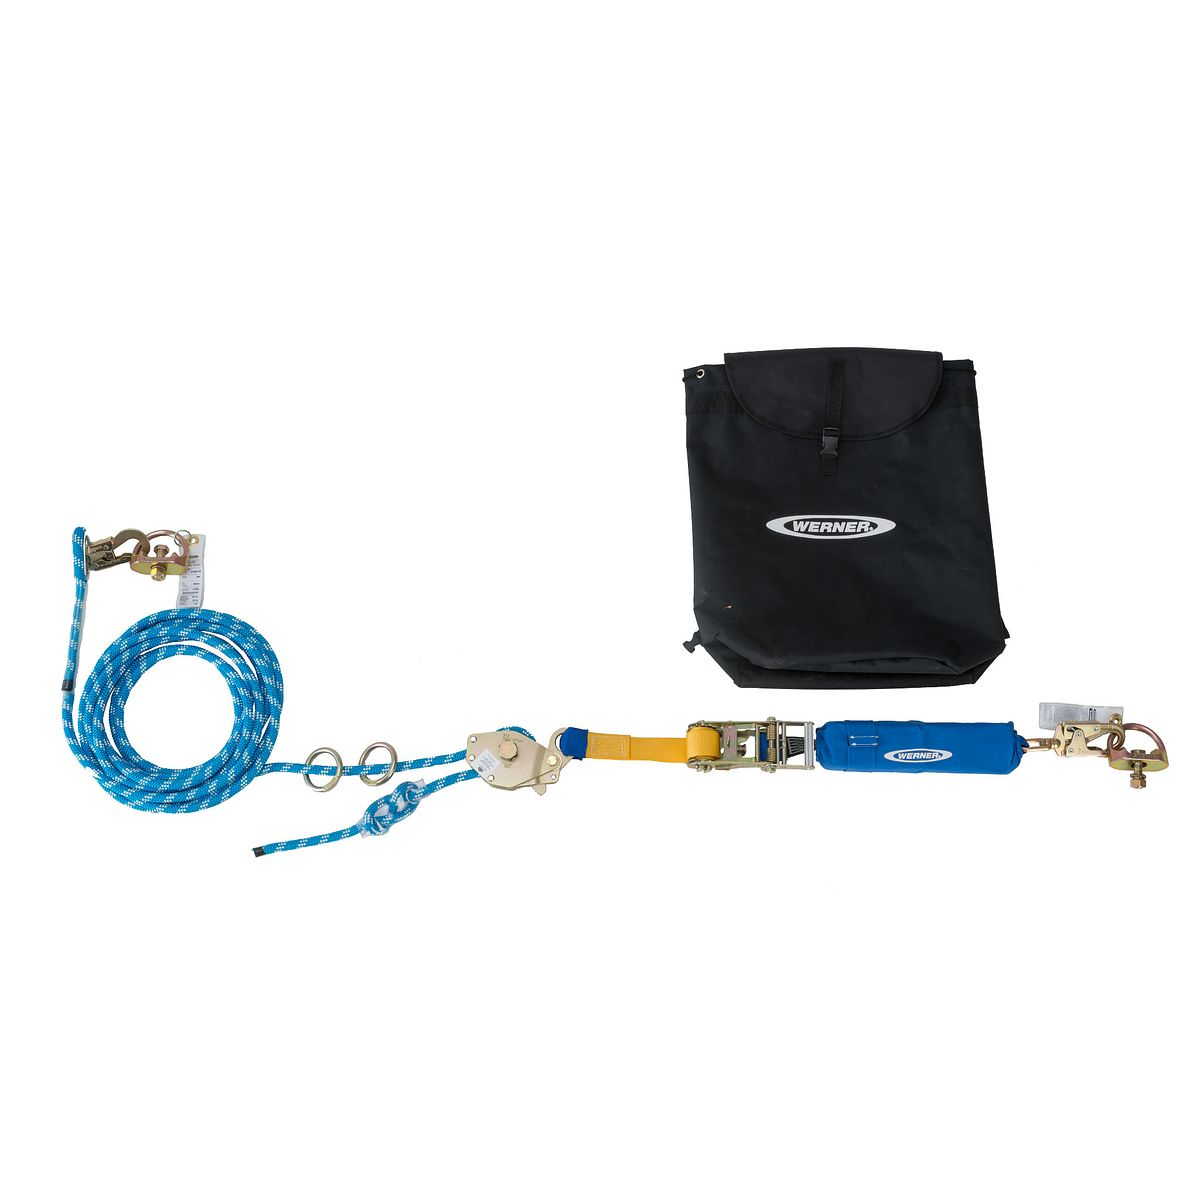 L122030 Fall Protection Werner Us